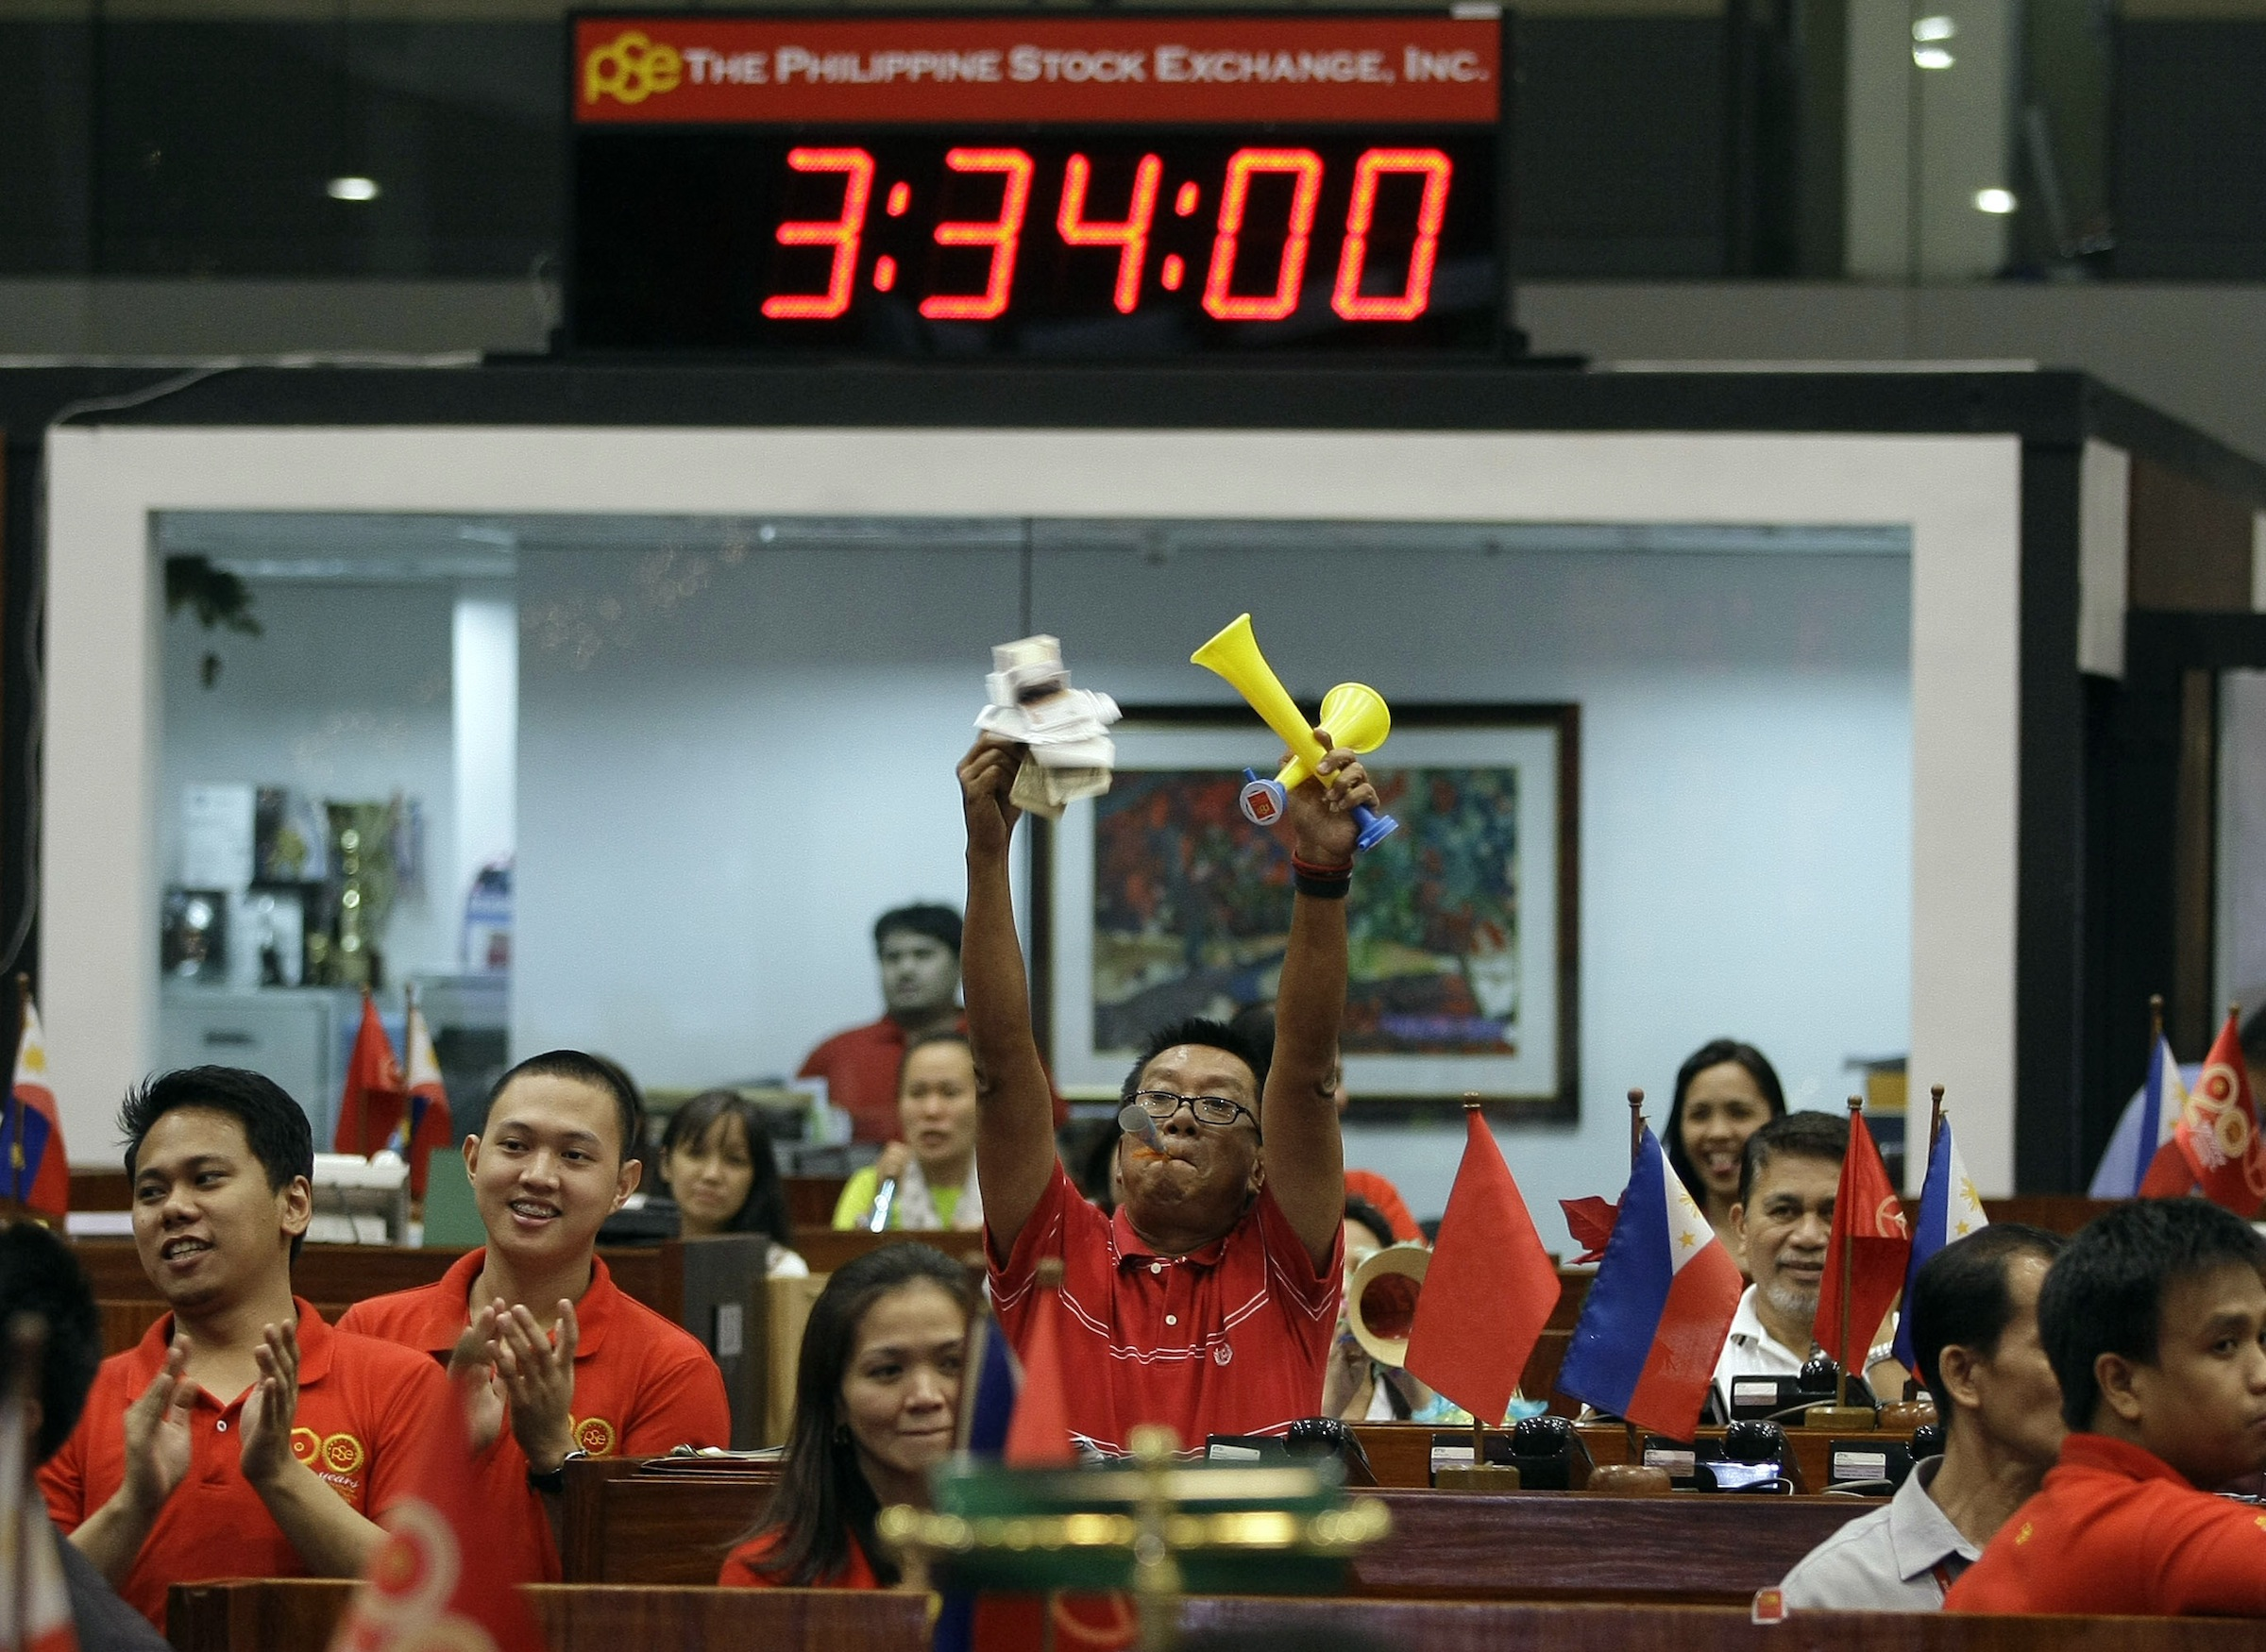 Filipino traders gesture as trading closes for the year at the Philippine Stock Exchange in the financial district of Makati, south of Manila,